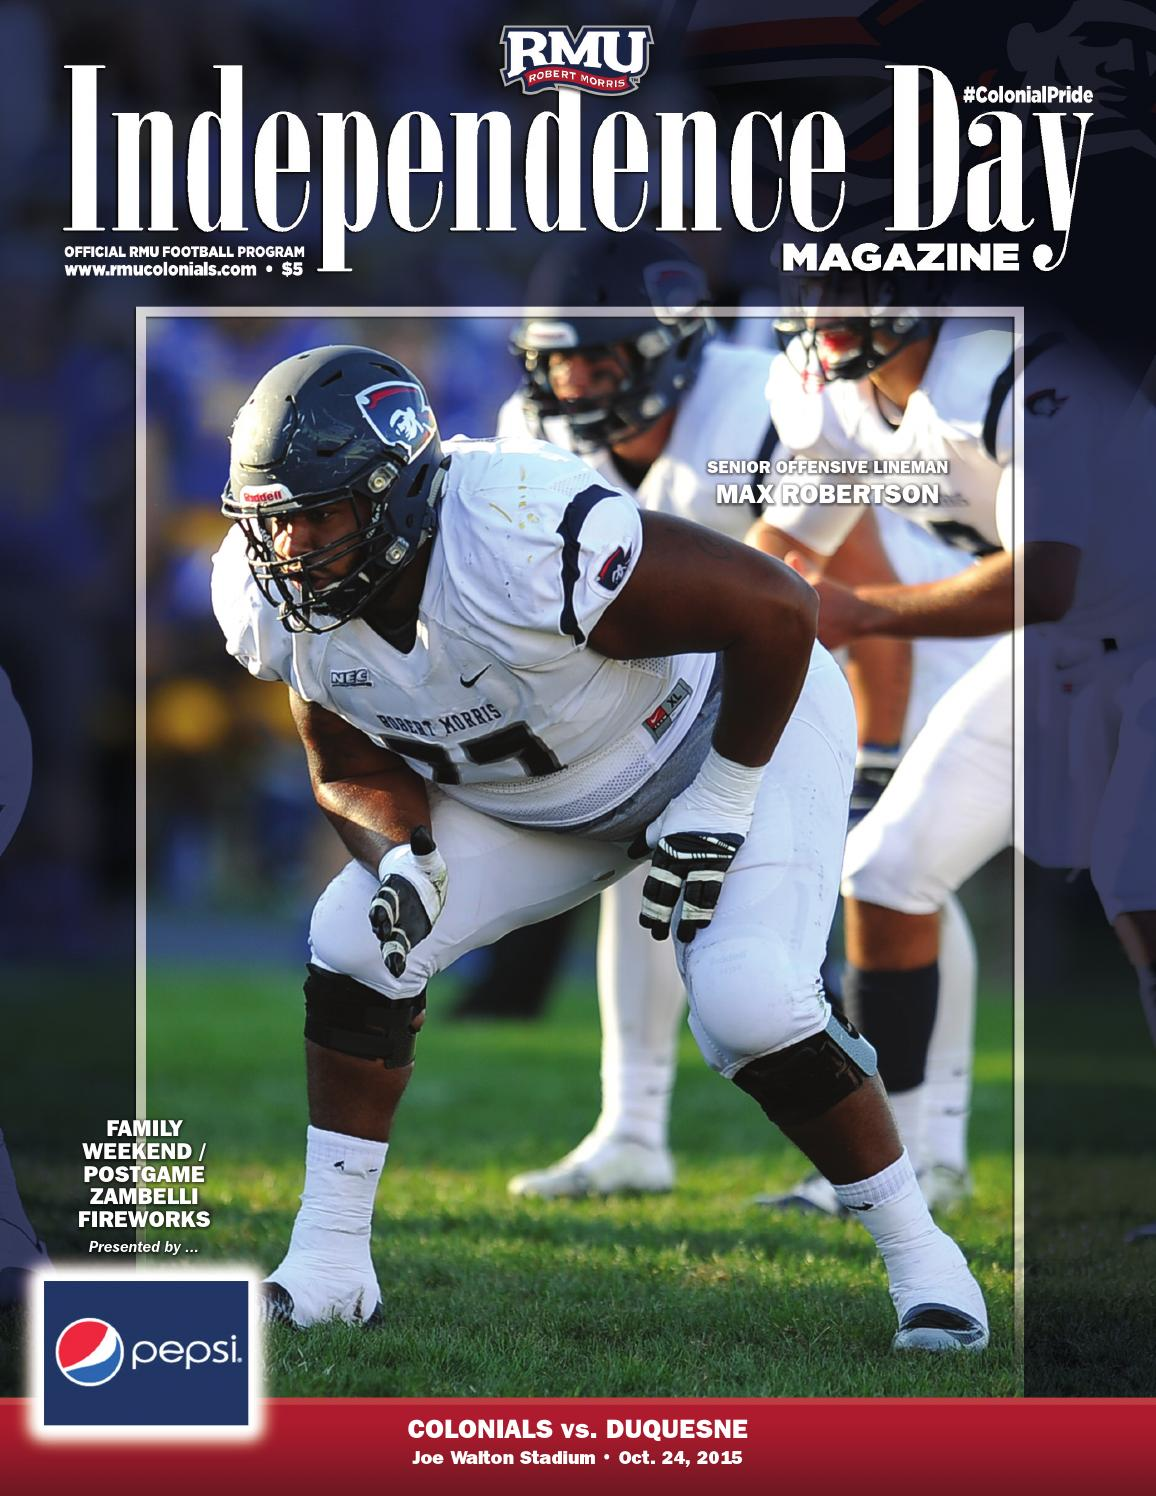 independence day magazine 9 3 11 by robert morris university independence day magazine oct 24 2015